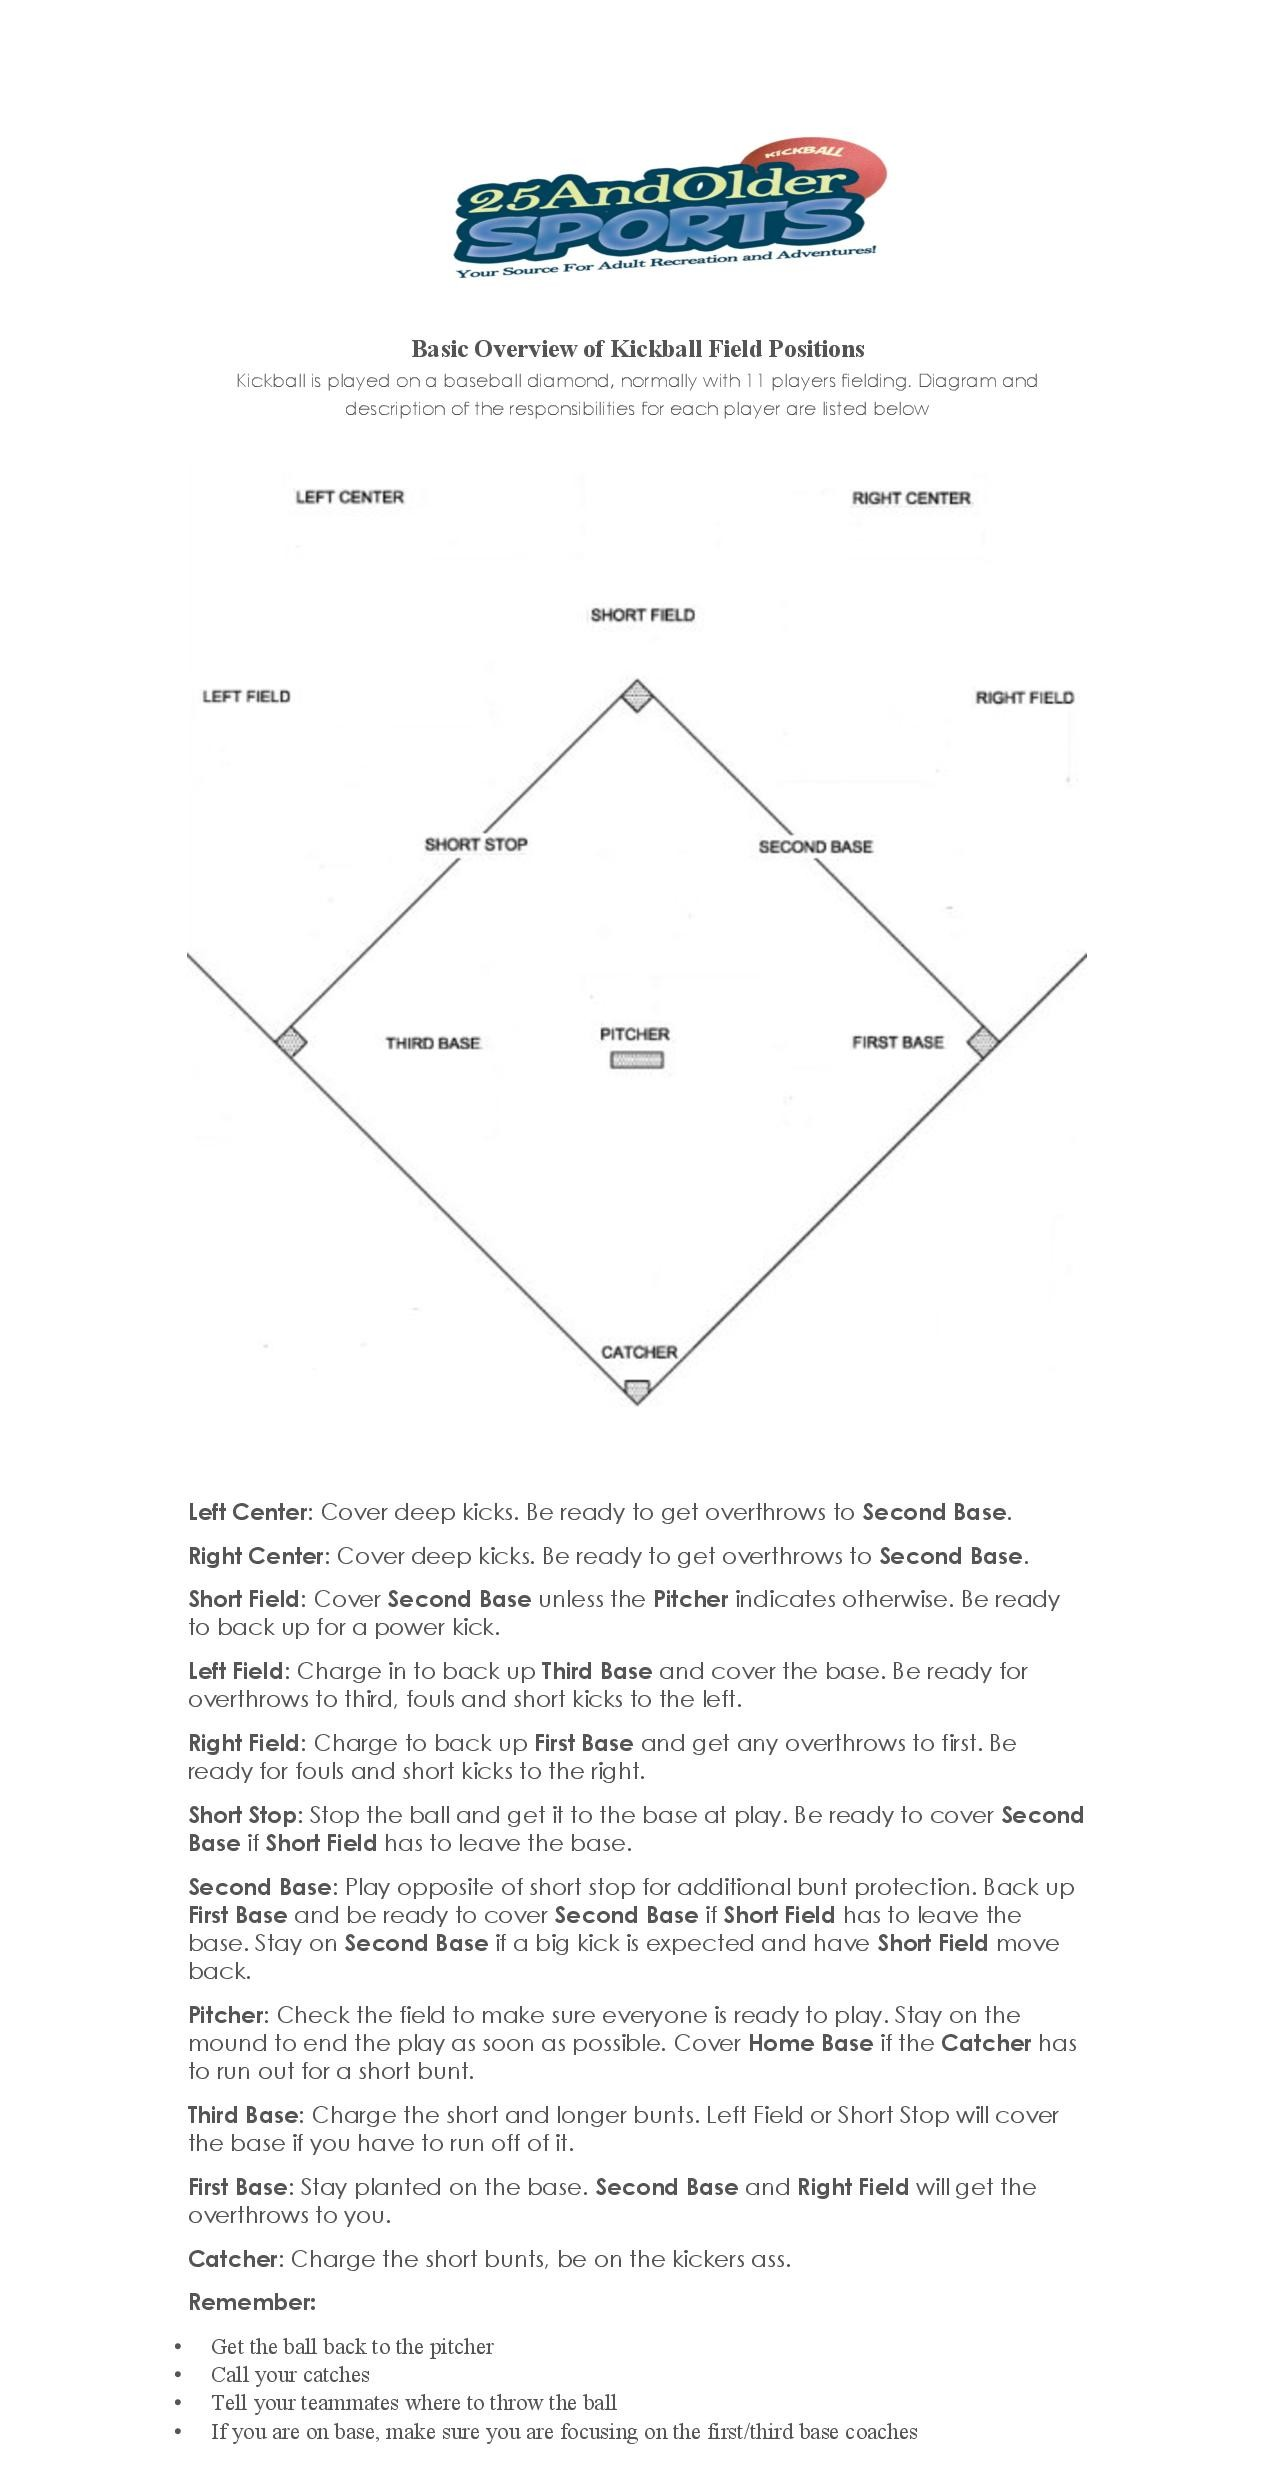 Basic Kickball Field Positions & Responsibilities